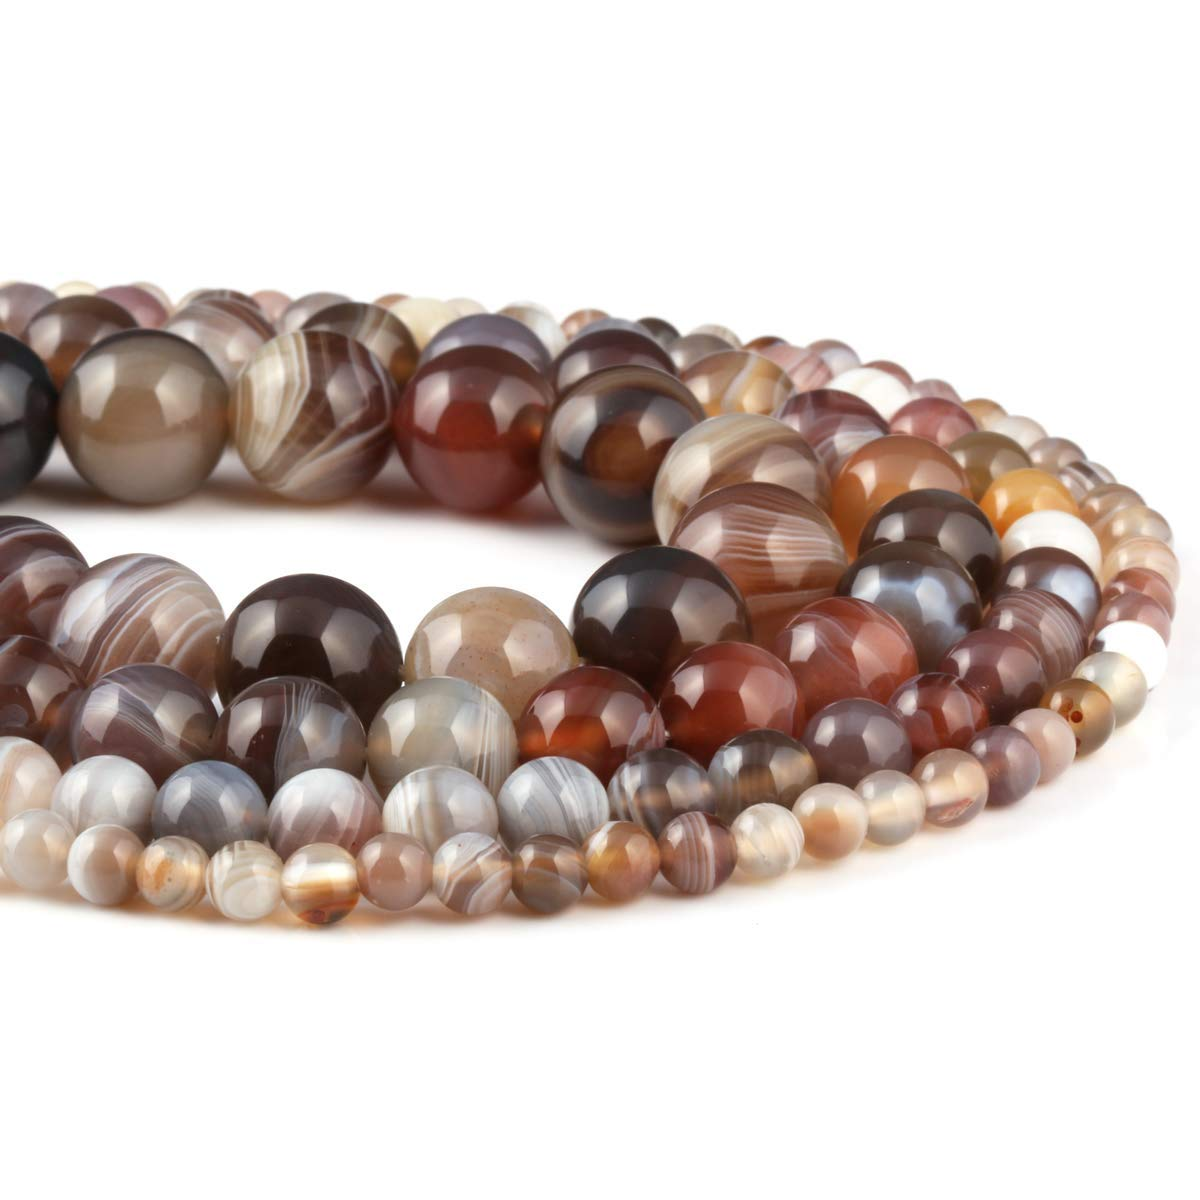 Natural Stone Stripe Agate Gemstone Faceted Round Loose Beads 1 Strand 15inchs 4mm for Bracelet Necklace Earrings Jewelry Making Crafts Design Healing Stripe Agate Beads(sold per bag 2 strands inside)